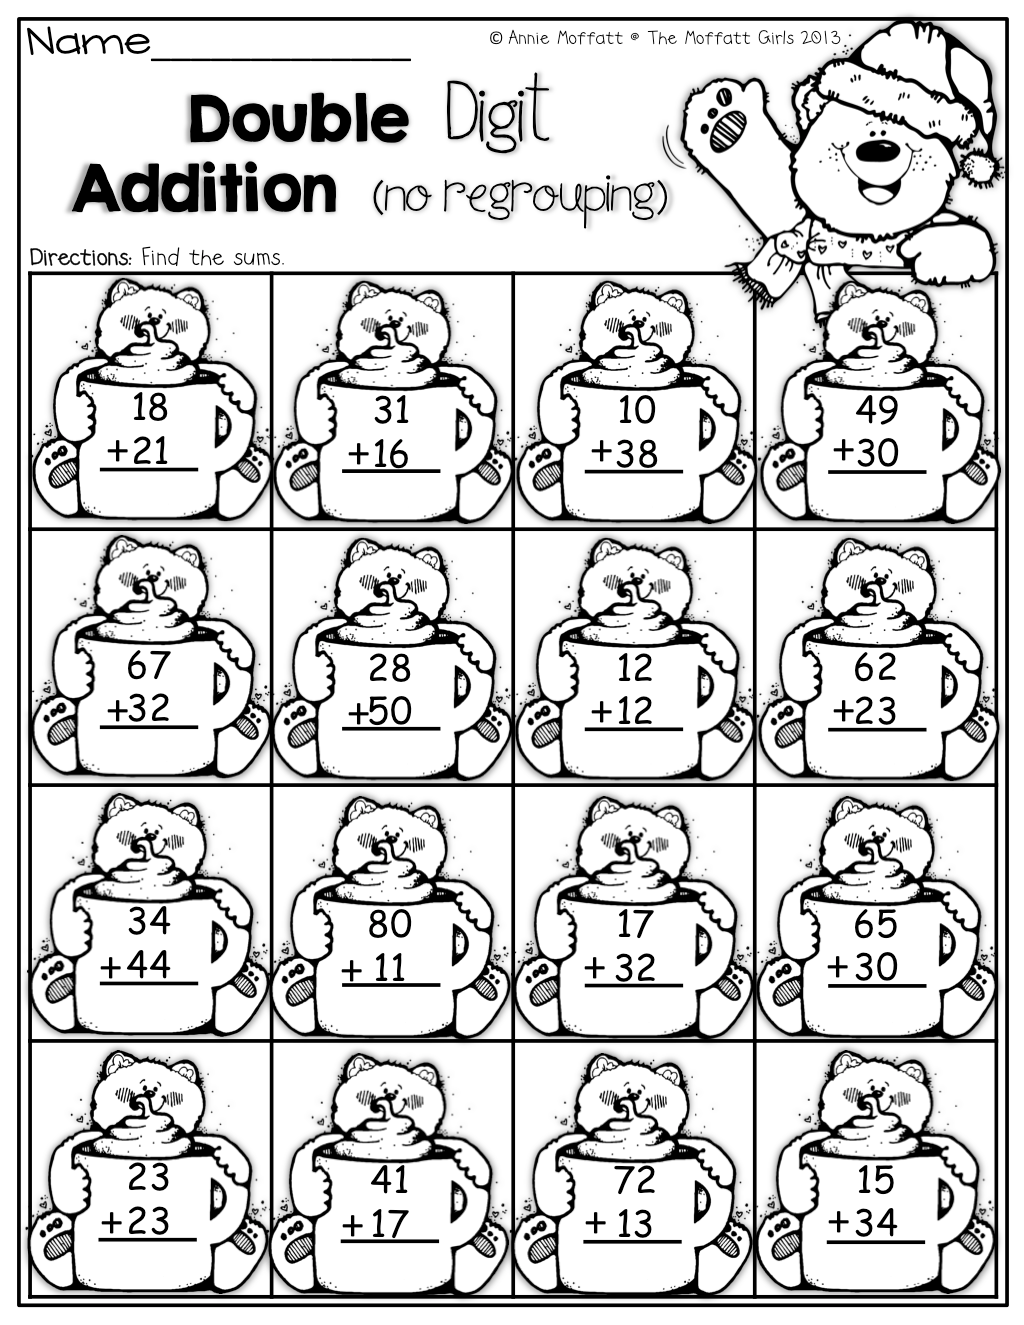 Double Digit Addition With No Regrouping